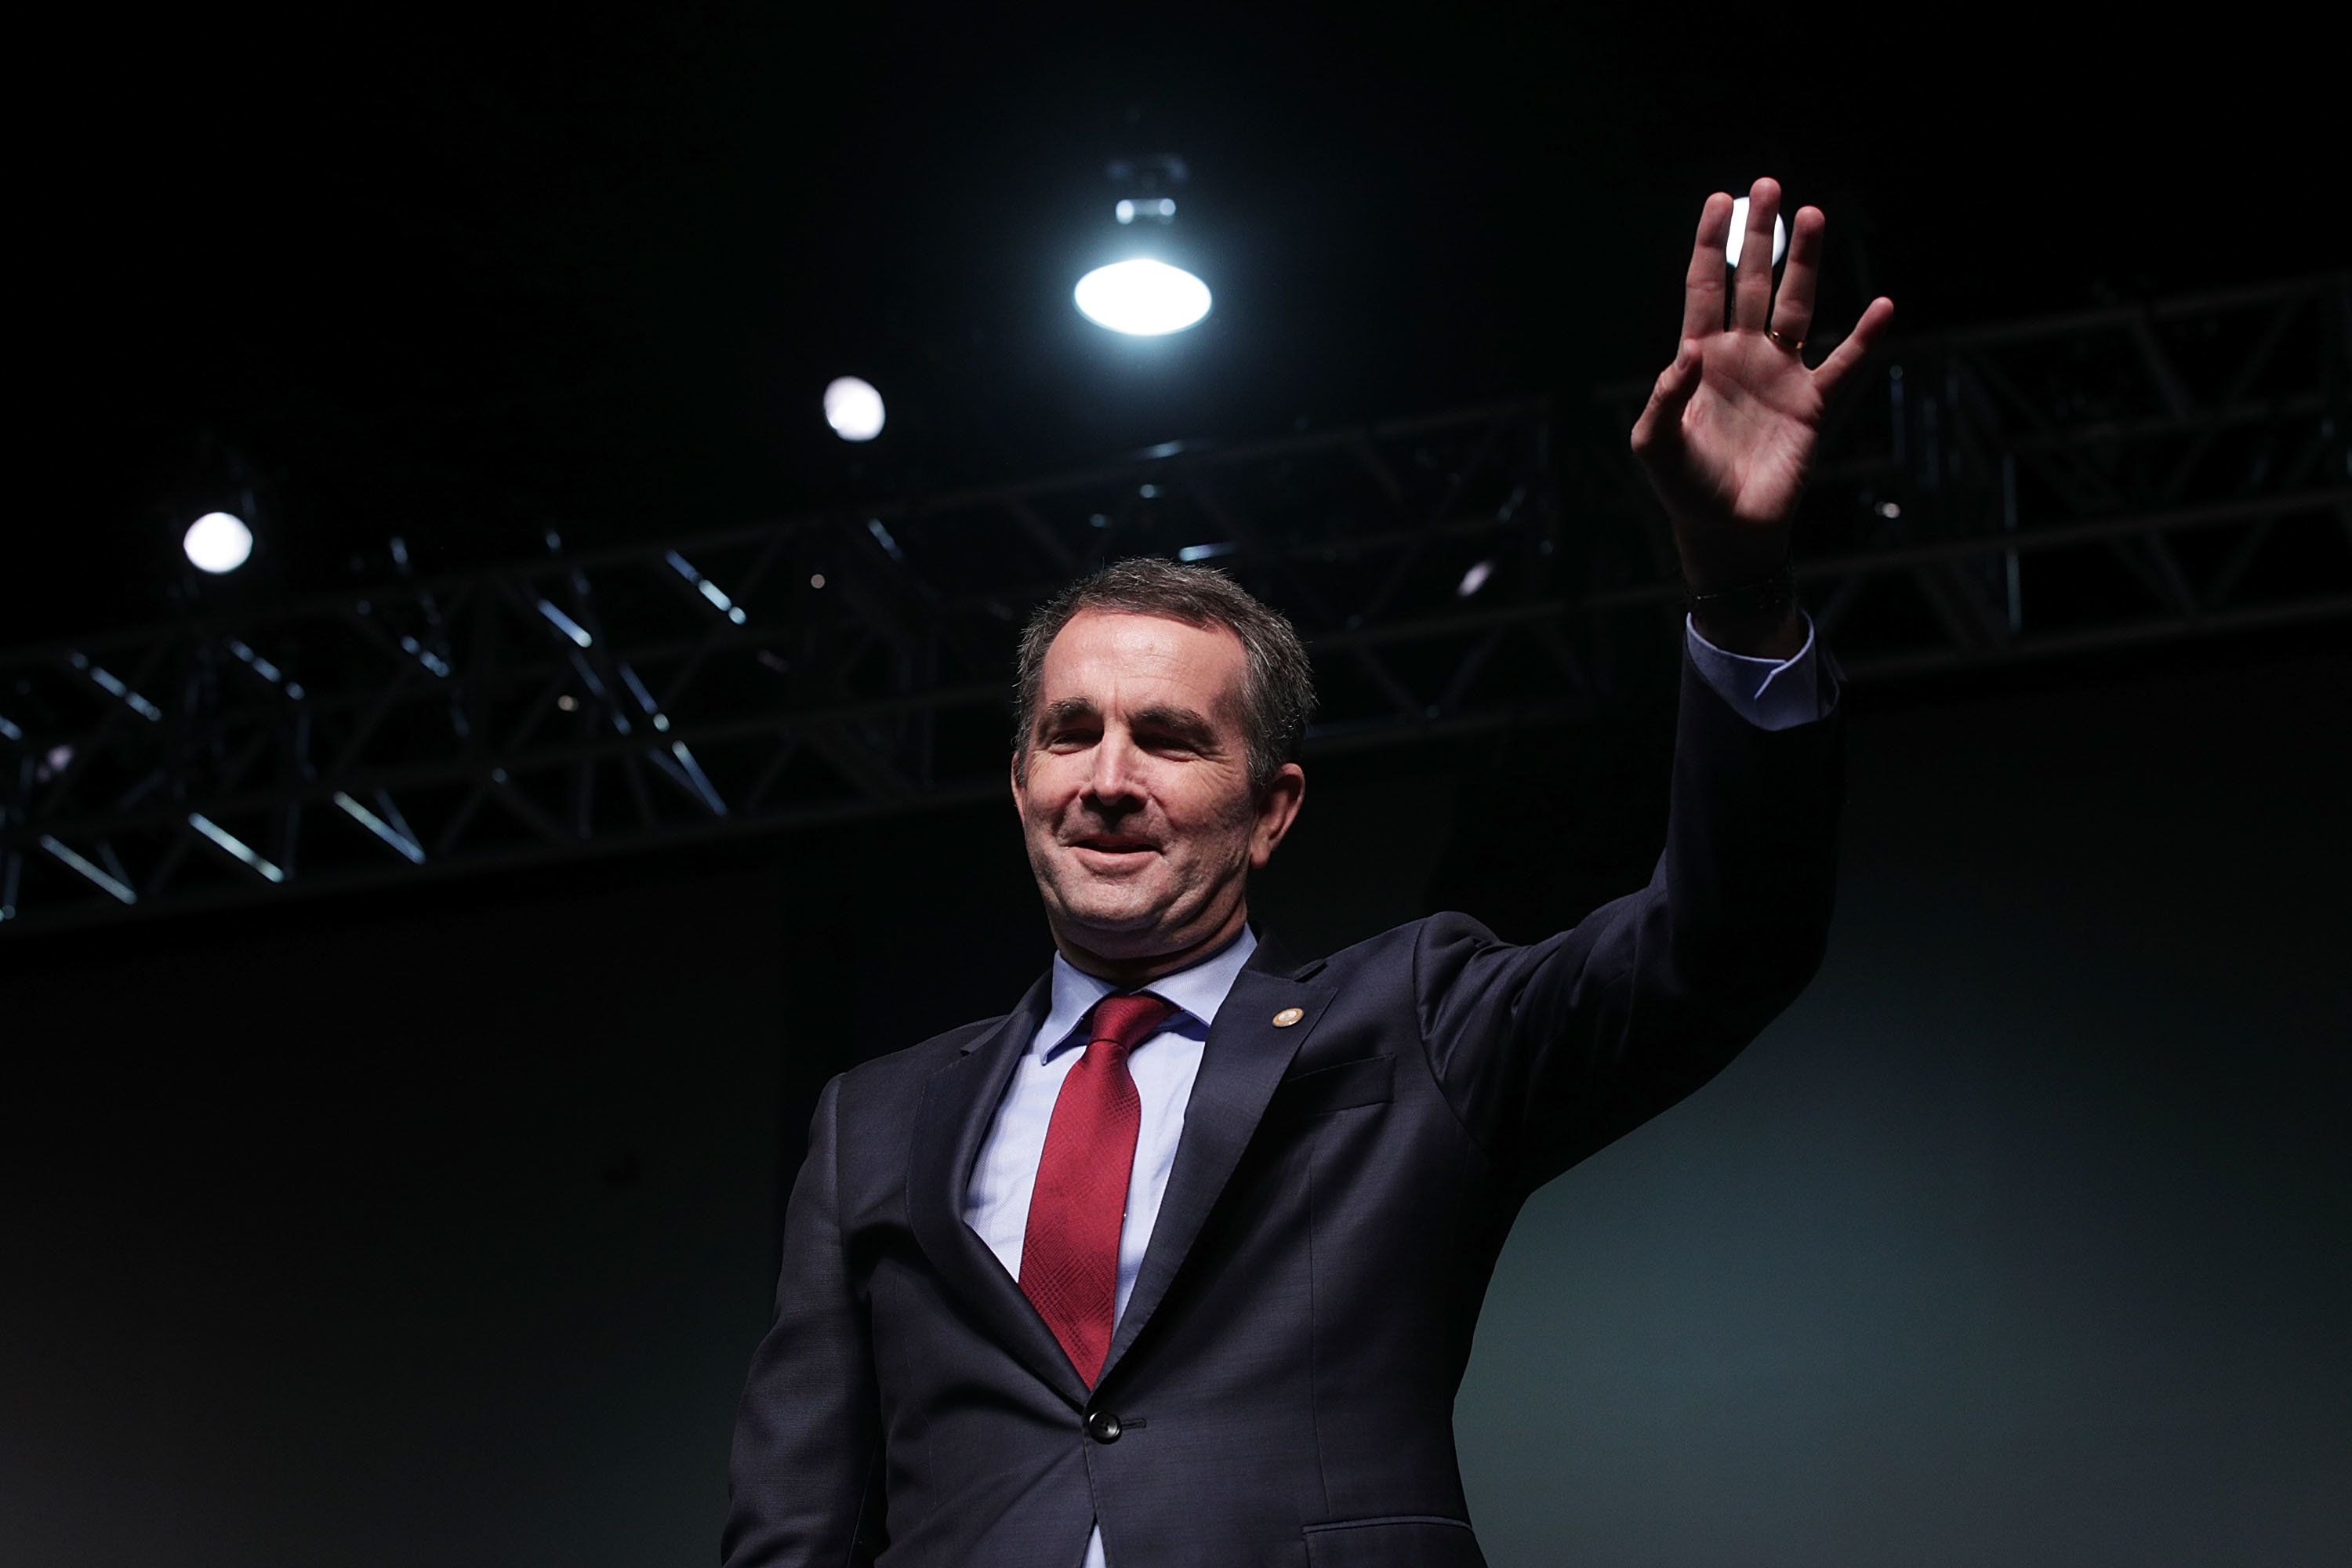 Democrat Ralph Northam hopes to avoid a demoralizing loss for his party in Virginia's gubernatorial election on Tuesday. Poll